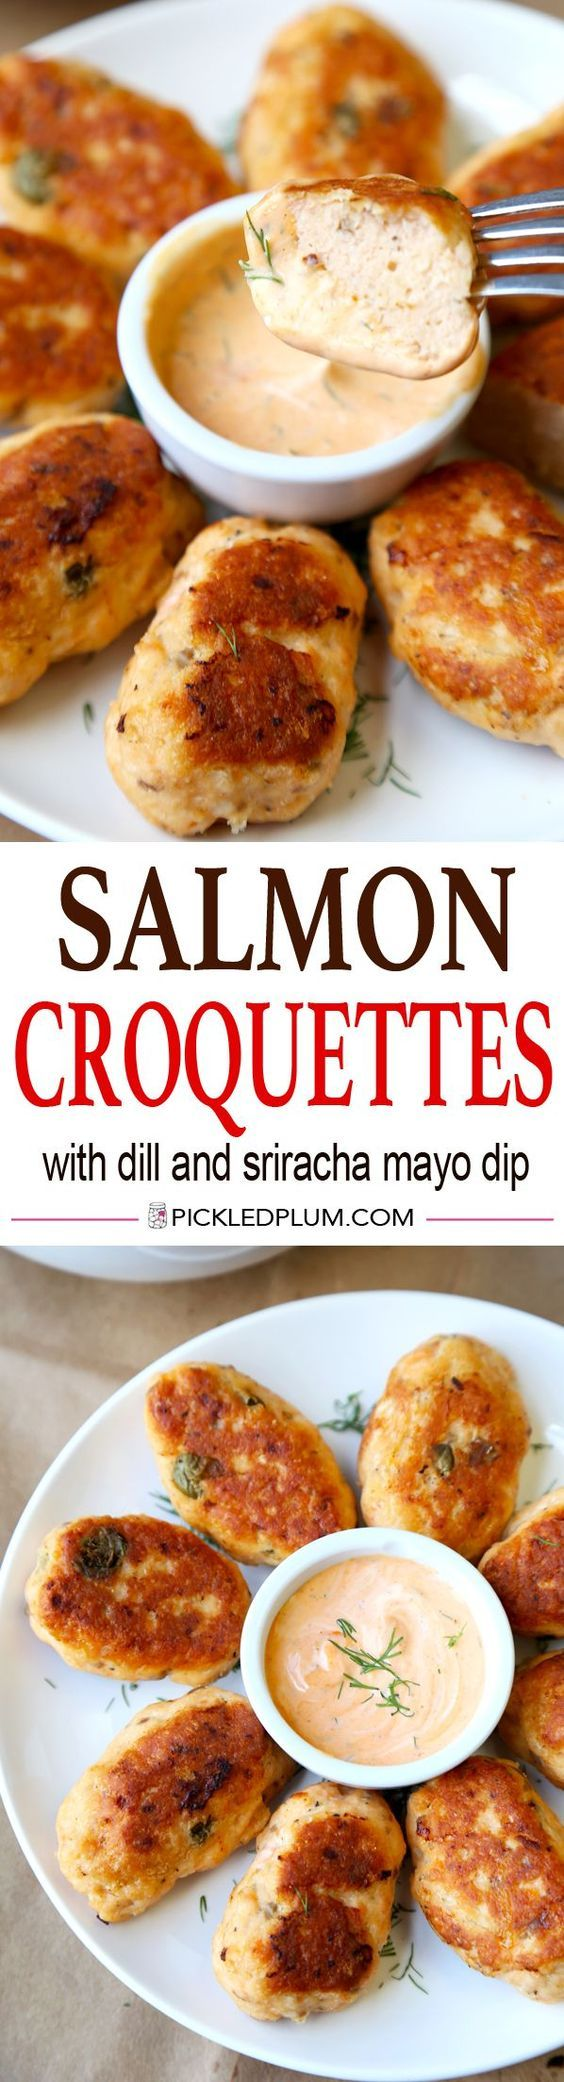 Healthy Salmon Croquettes Recipe with Tangy Dill and Sriracha Dipping Sauce. Light, Tasty and only 20 minutes to make!